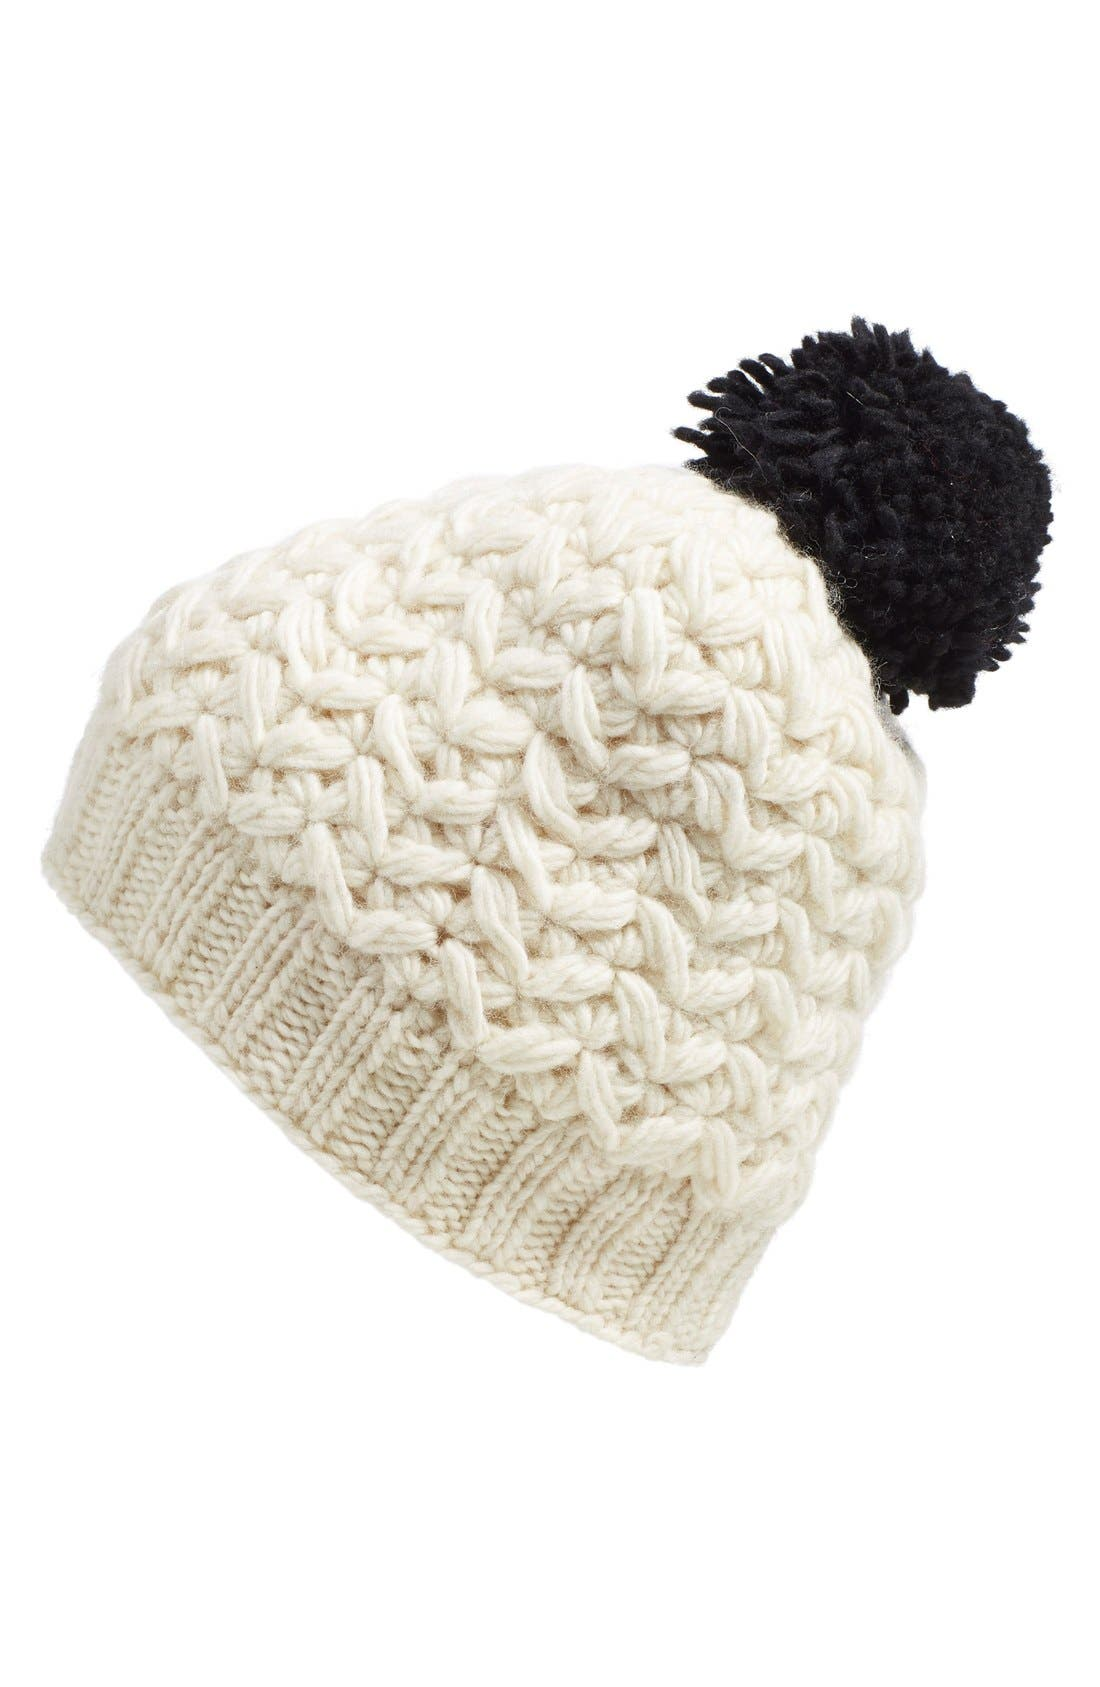 Alternate Image 1 Selected - Nirvanna Designs 'Black Pom' Knit Beanie